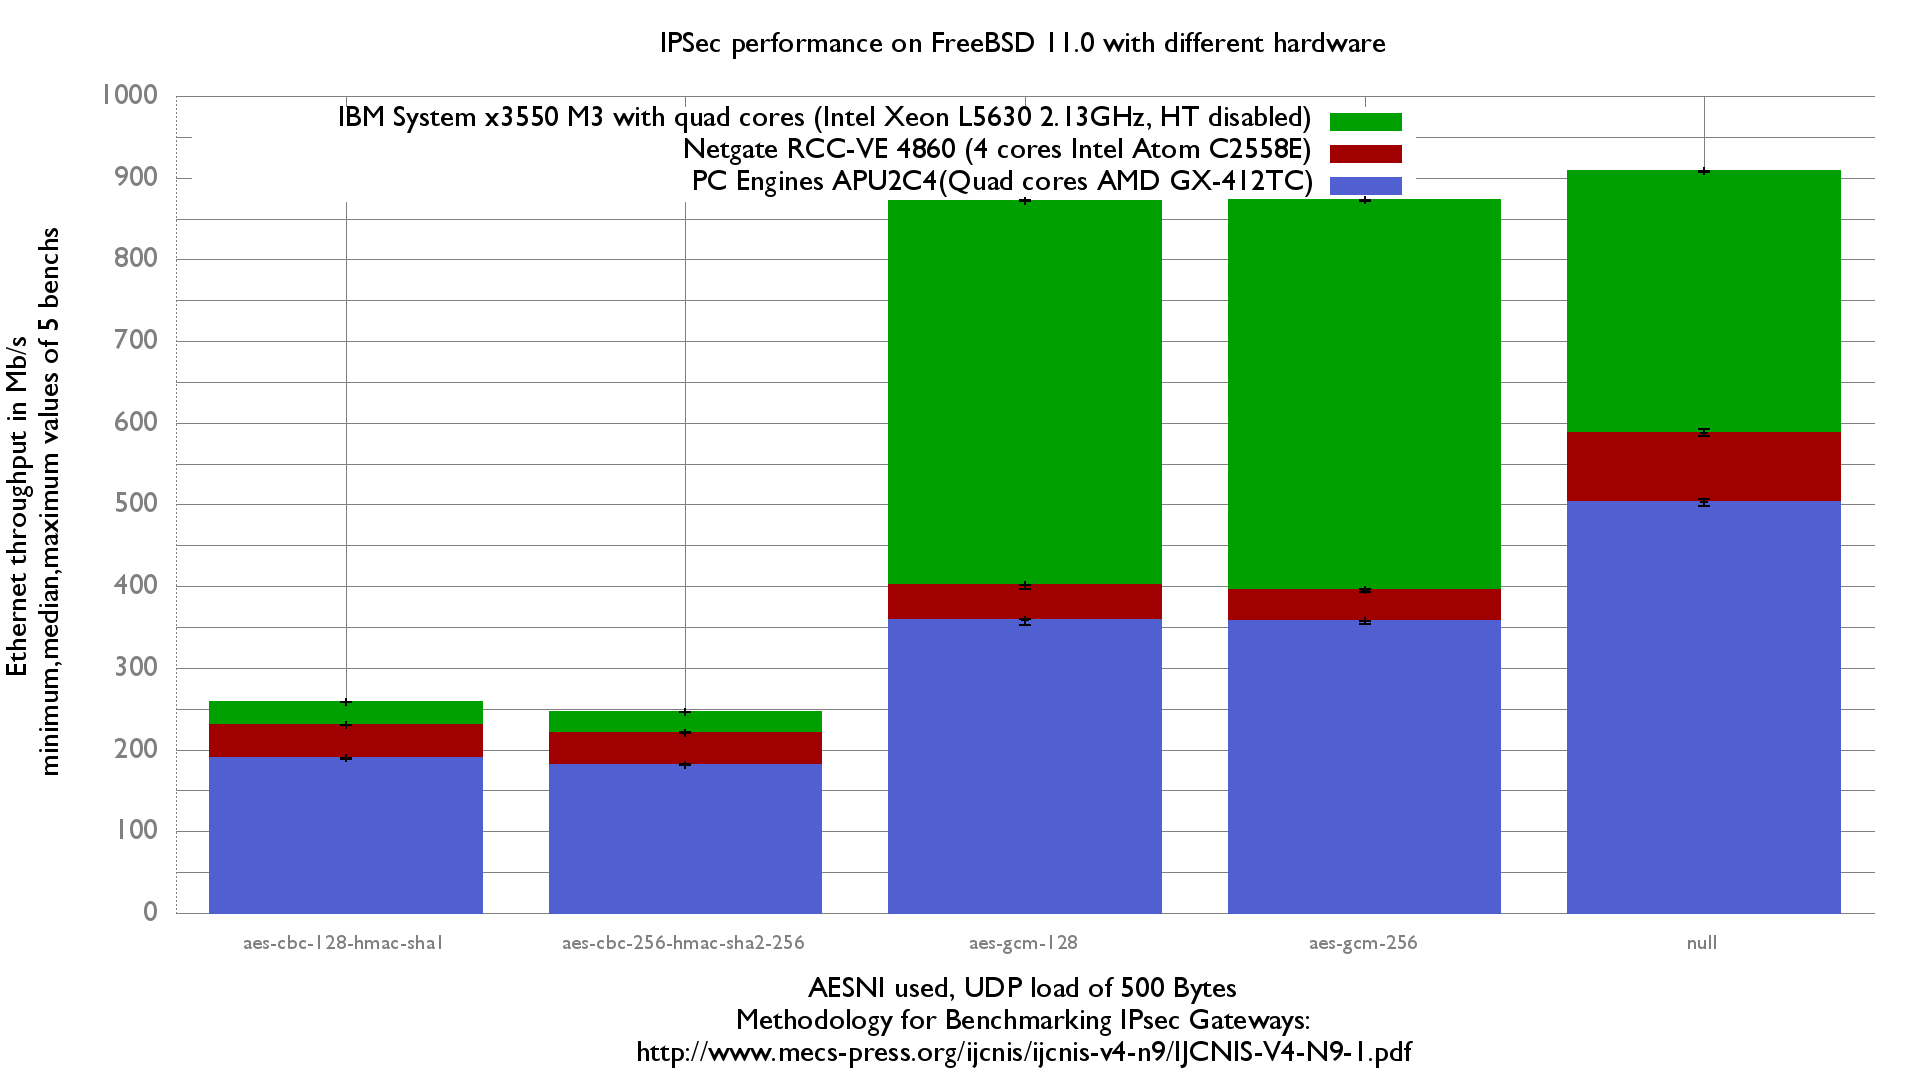 IPSec performance on multiple servers with FreeBSD 11.0